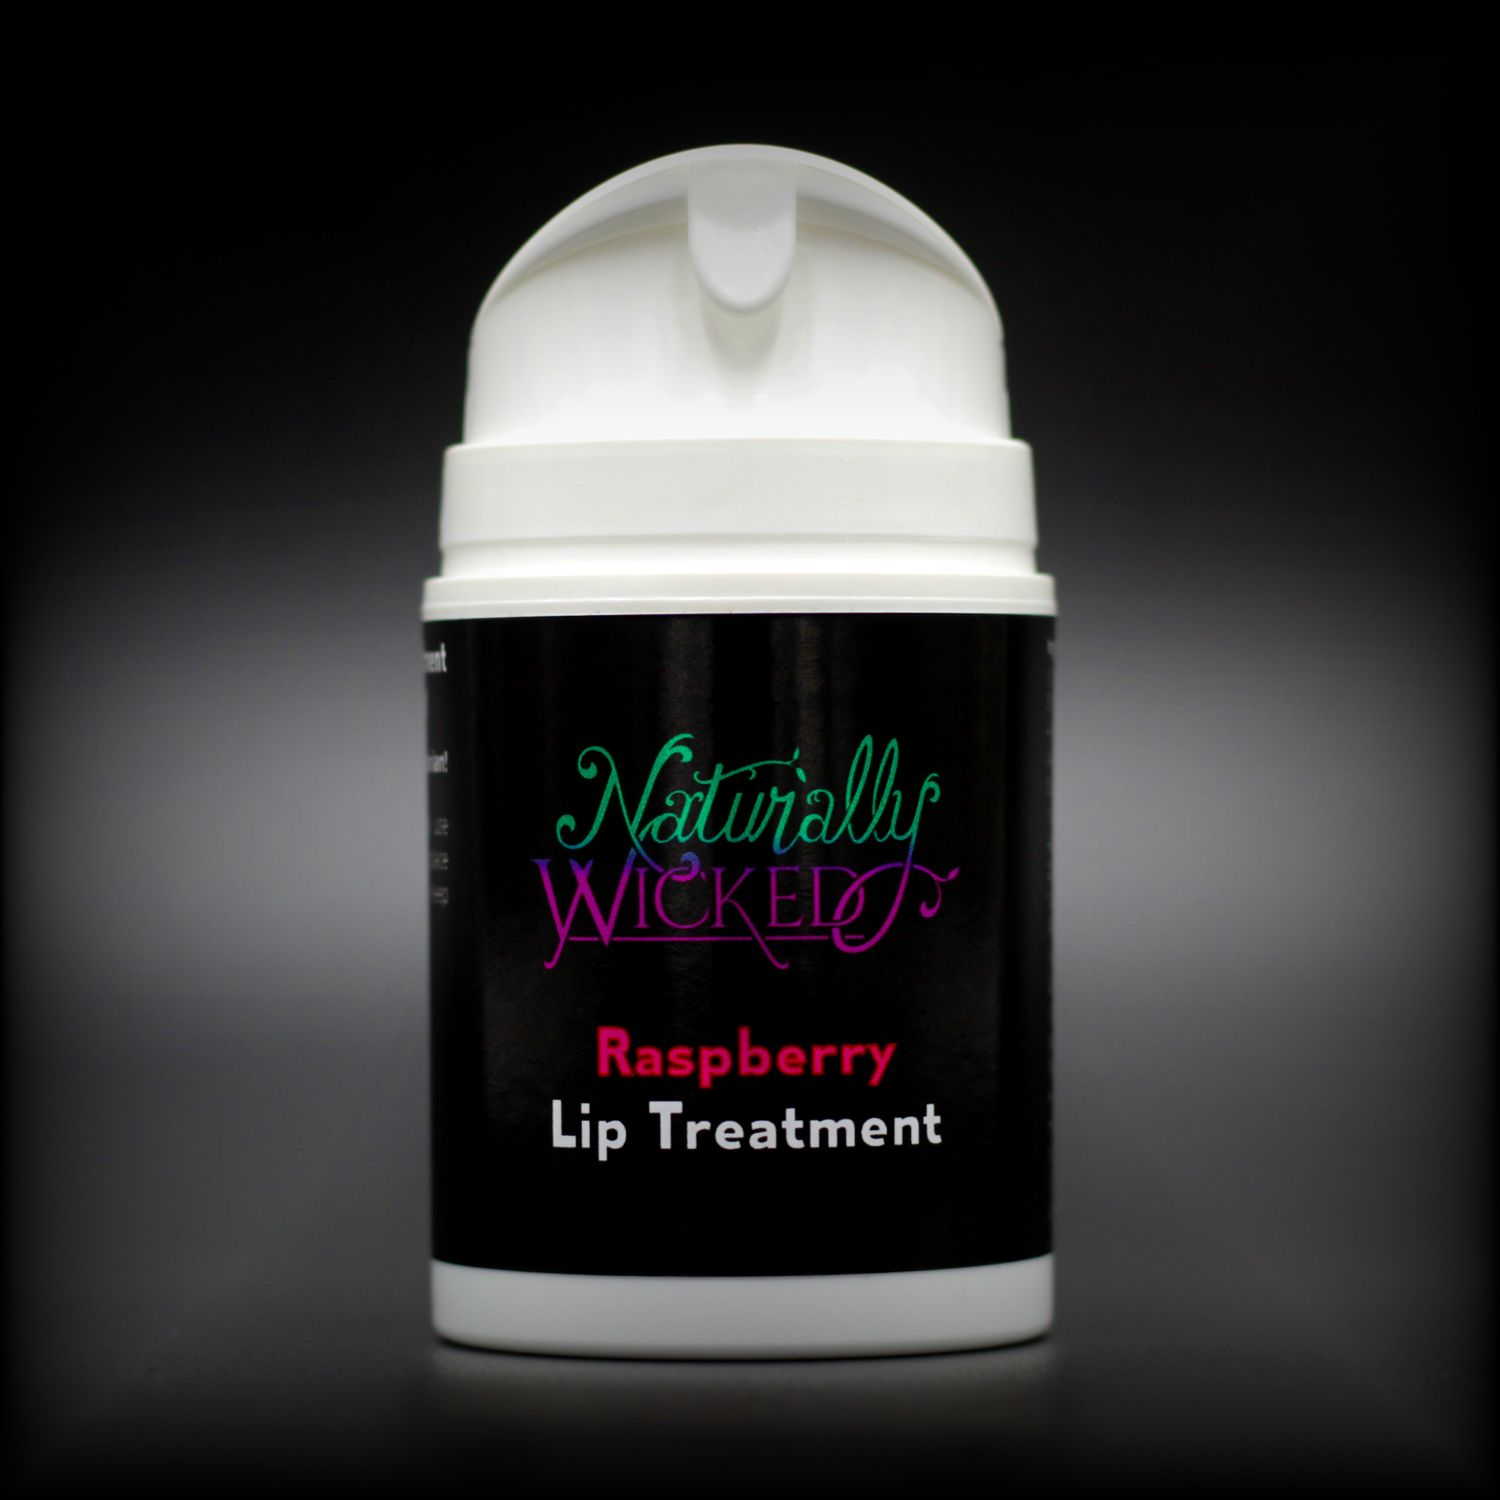 Naturally Wicked Raspberry Lip Treatment Container Without Lid Revealing Dispenser & Protective Seal